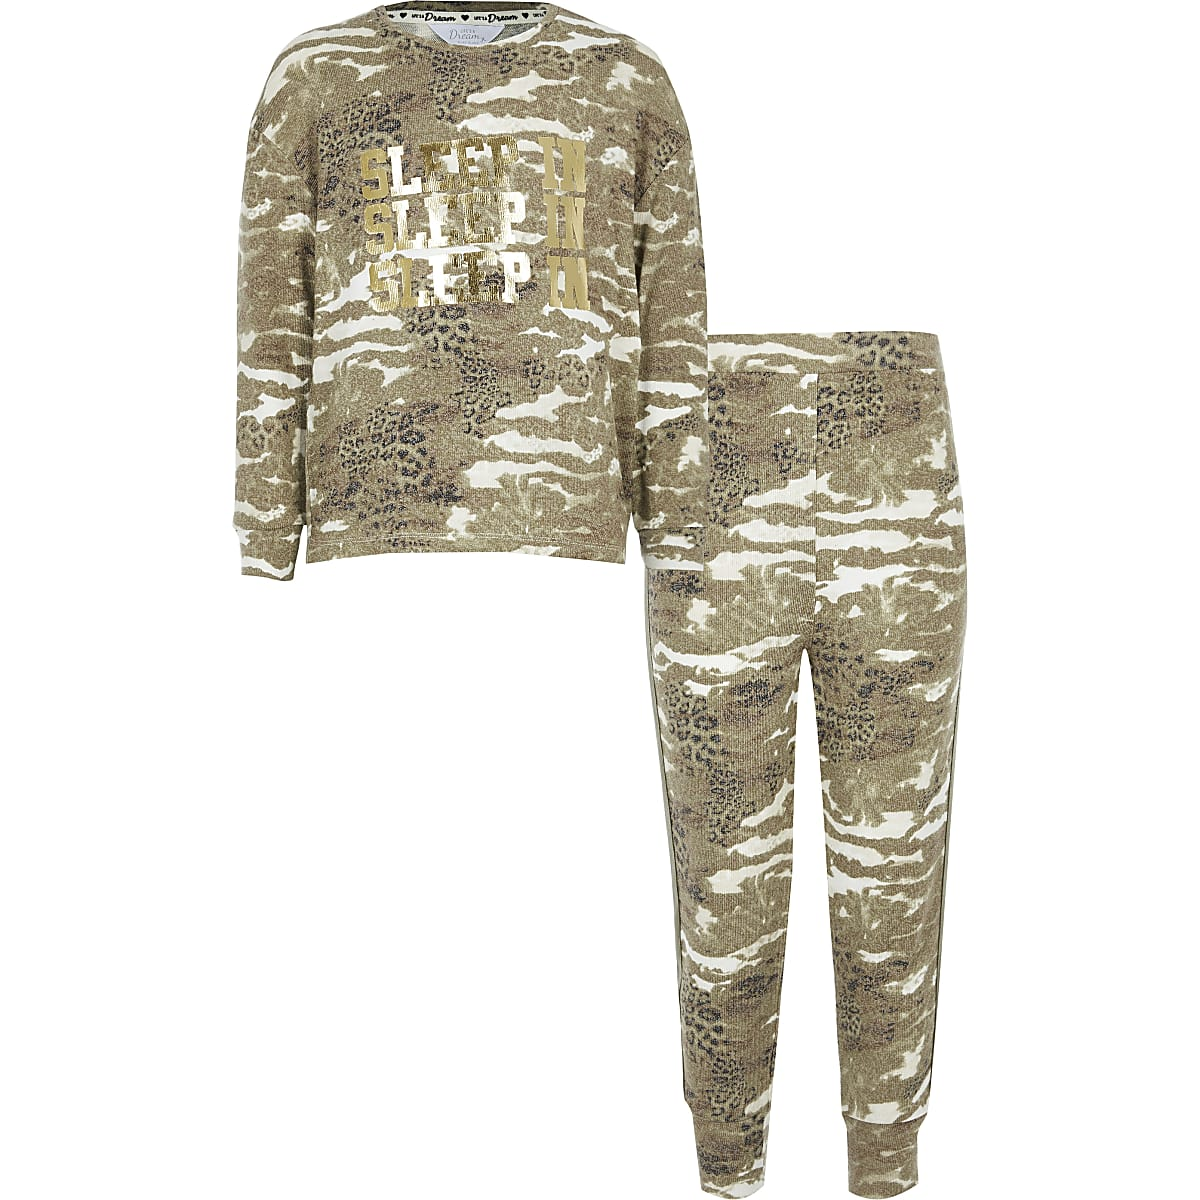 Girls khaki camo 'Sleep in' pyjama outfit